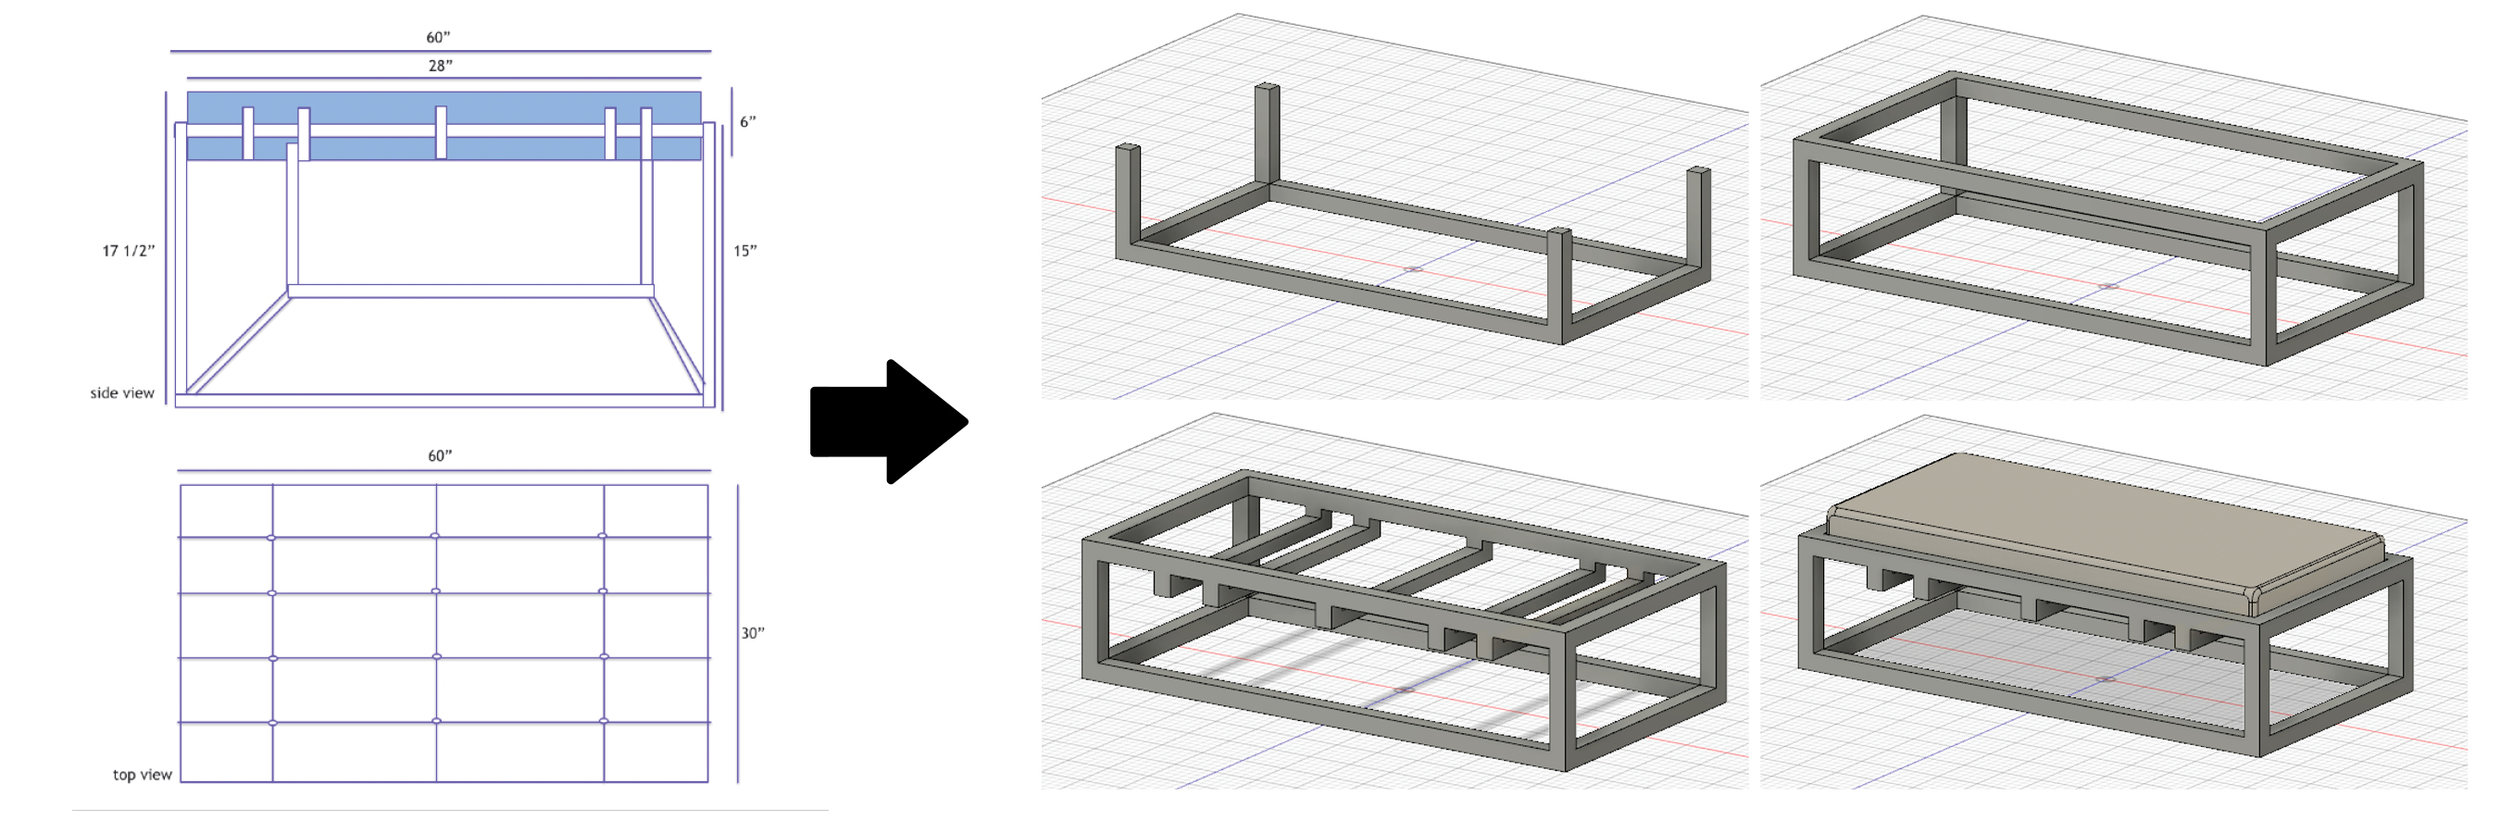 With the Enhanced 3D process, the concept sketch is converted directly into a 3D digital model with all of the dimensions and materials specification needed for production.